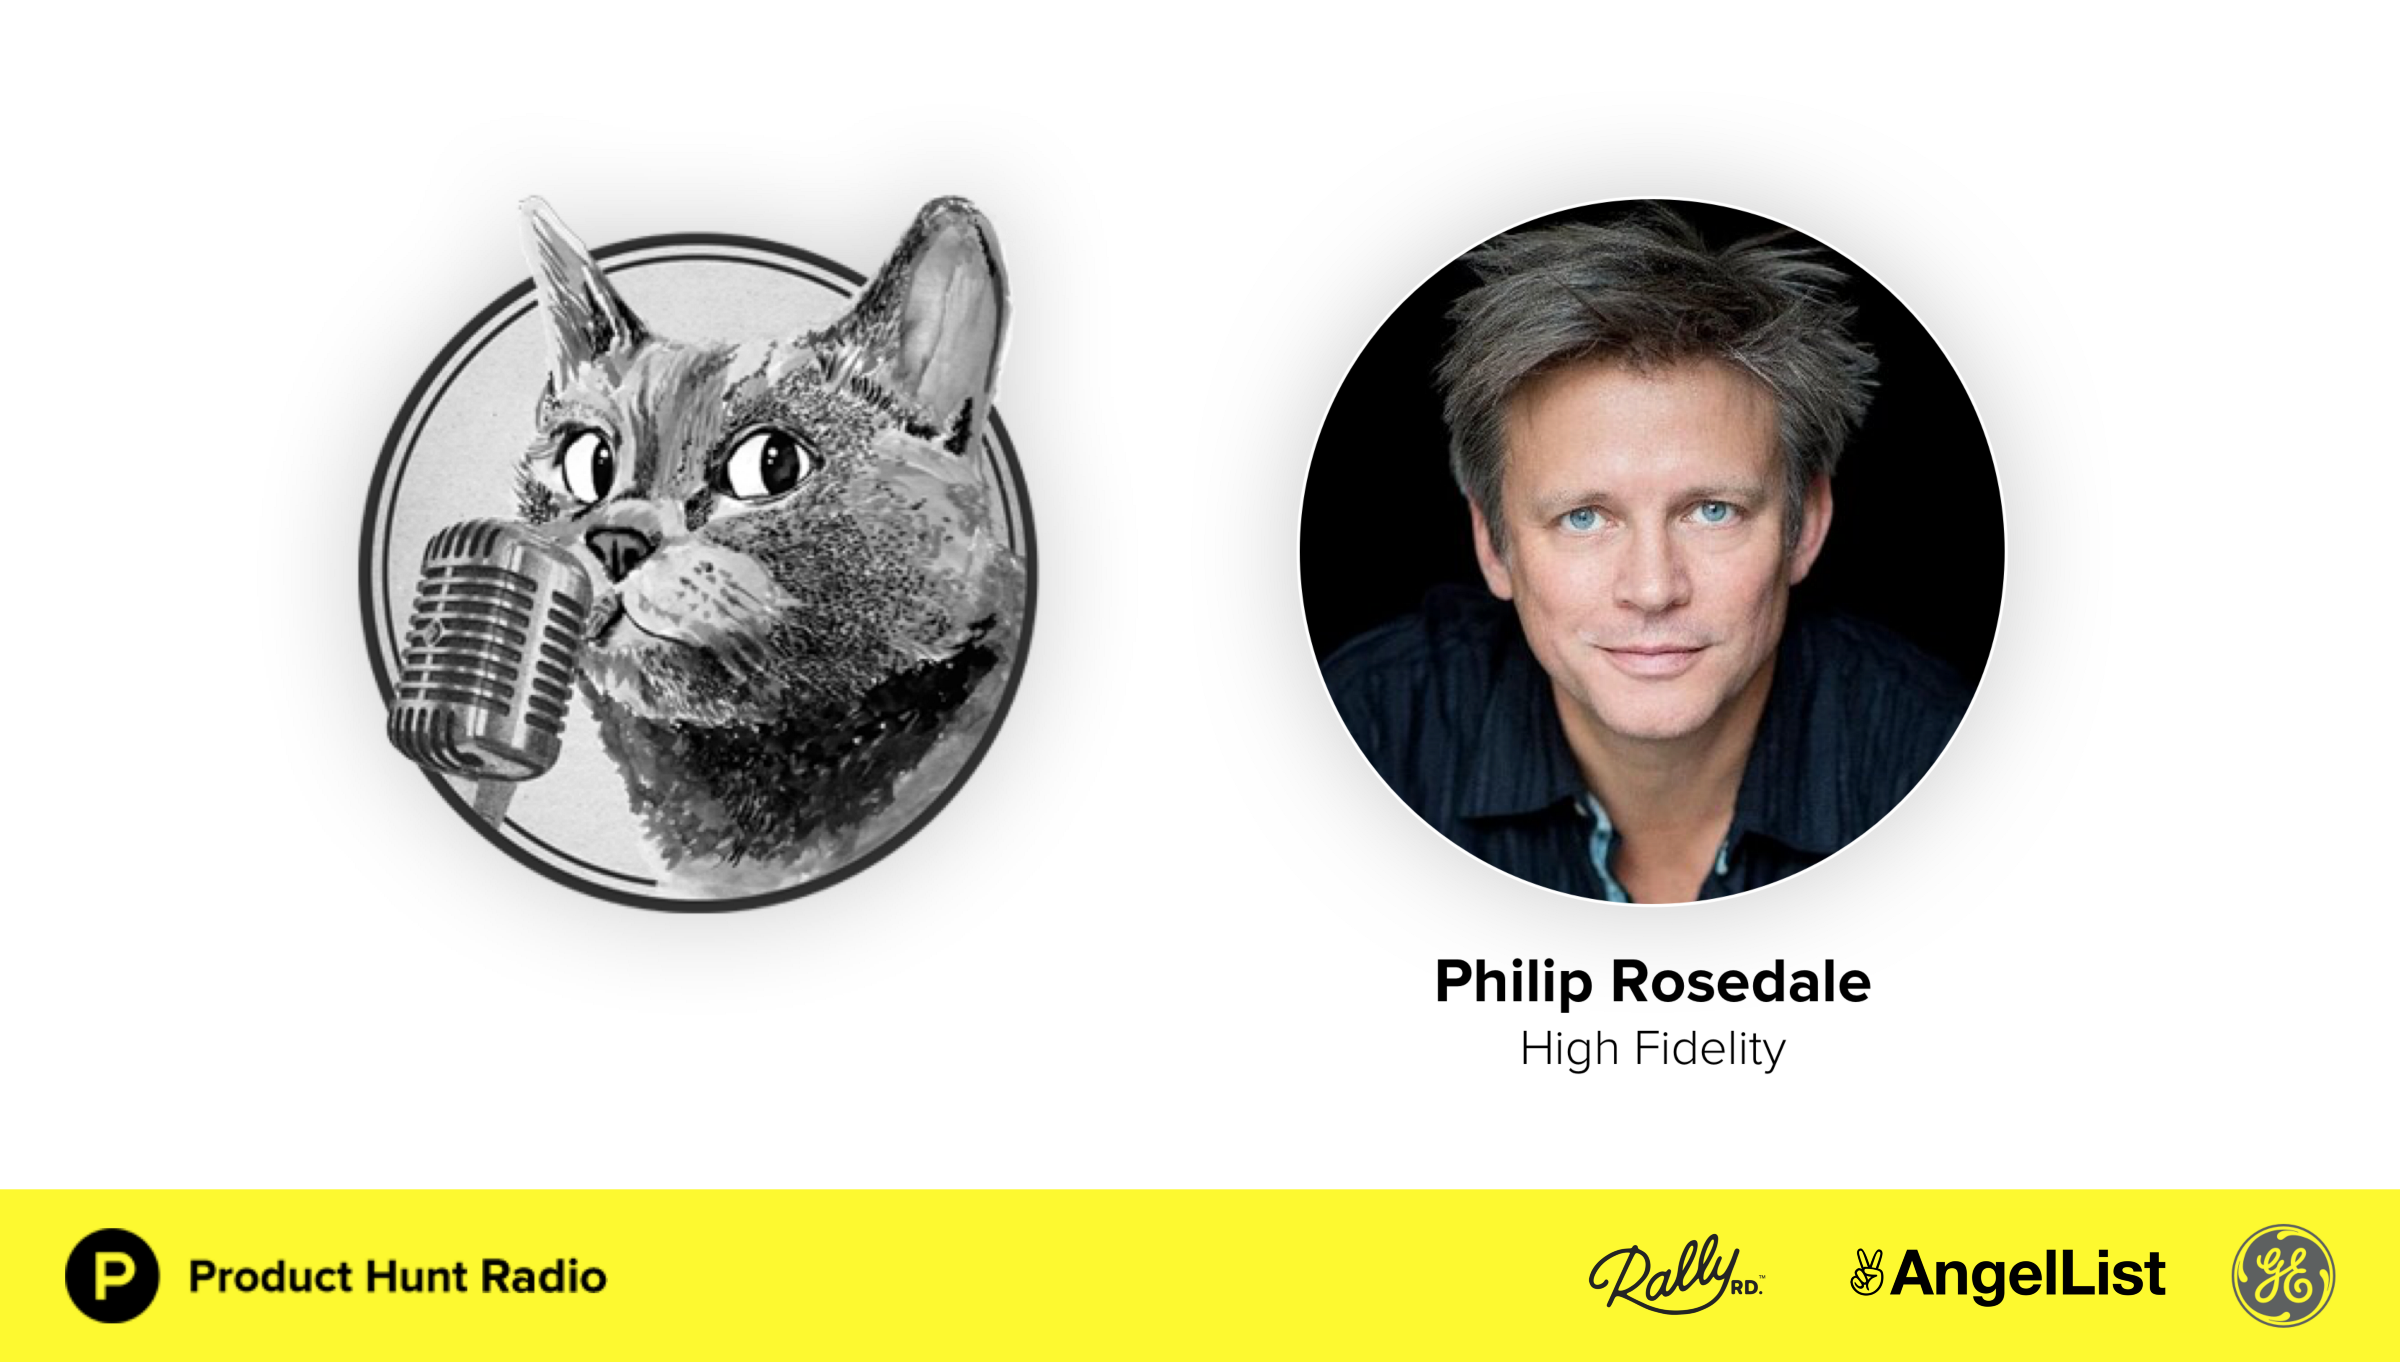 306be7ee4b6 Product Hunt Radio  The Future of VR (with Second Life and High Fidelity s  Philip Rosedale)